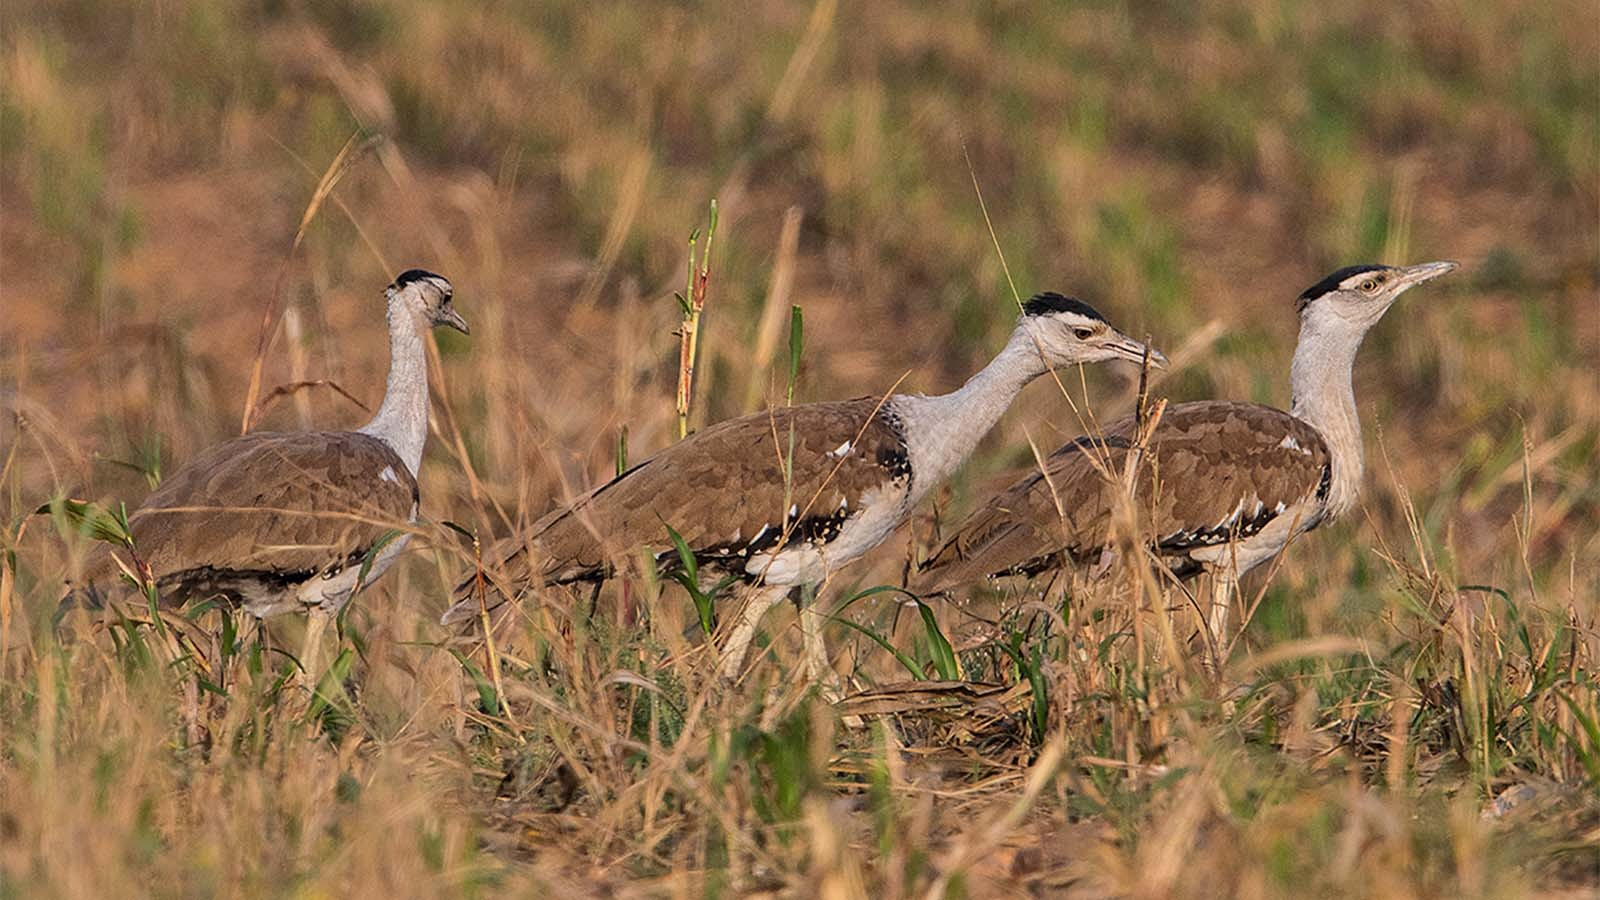 From 250 in 2011, there are now less than 150 Great Indian Bustards in the wild